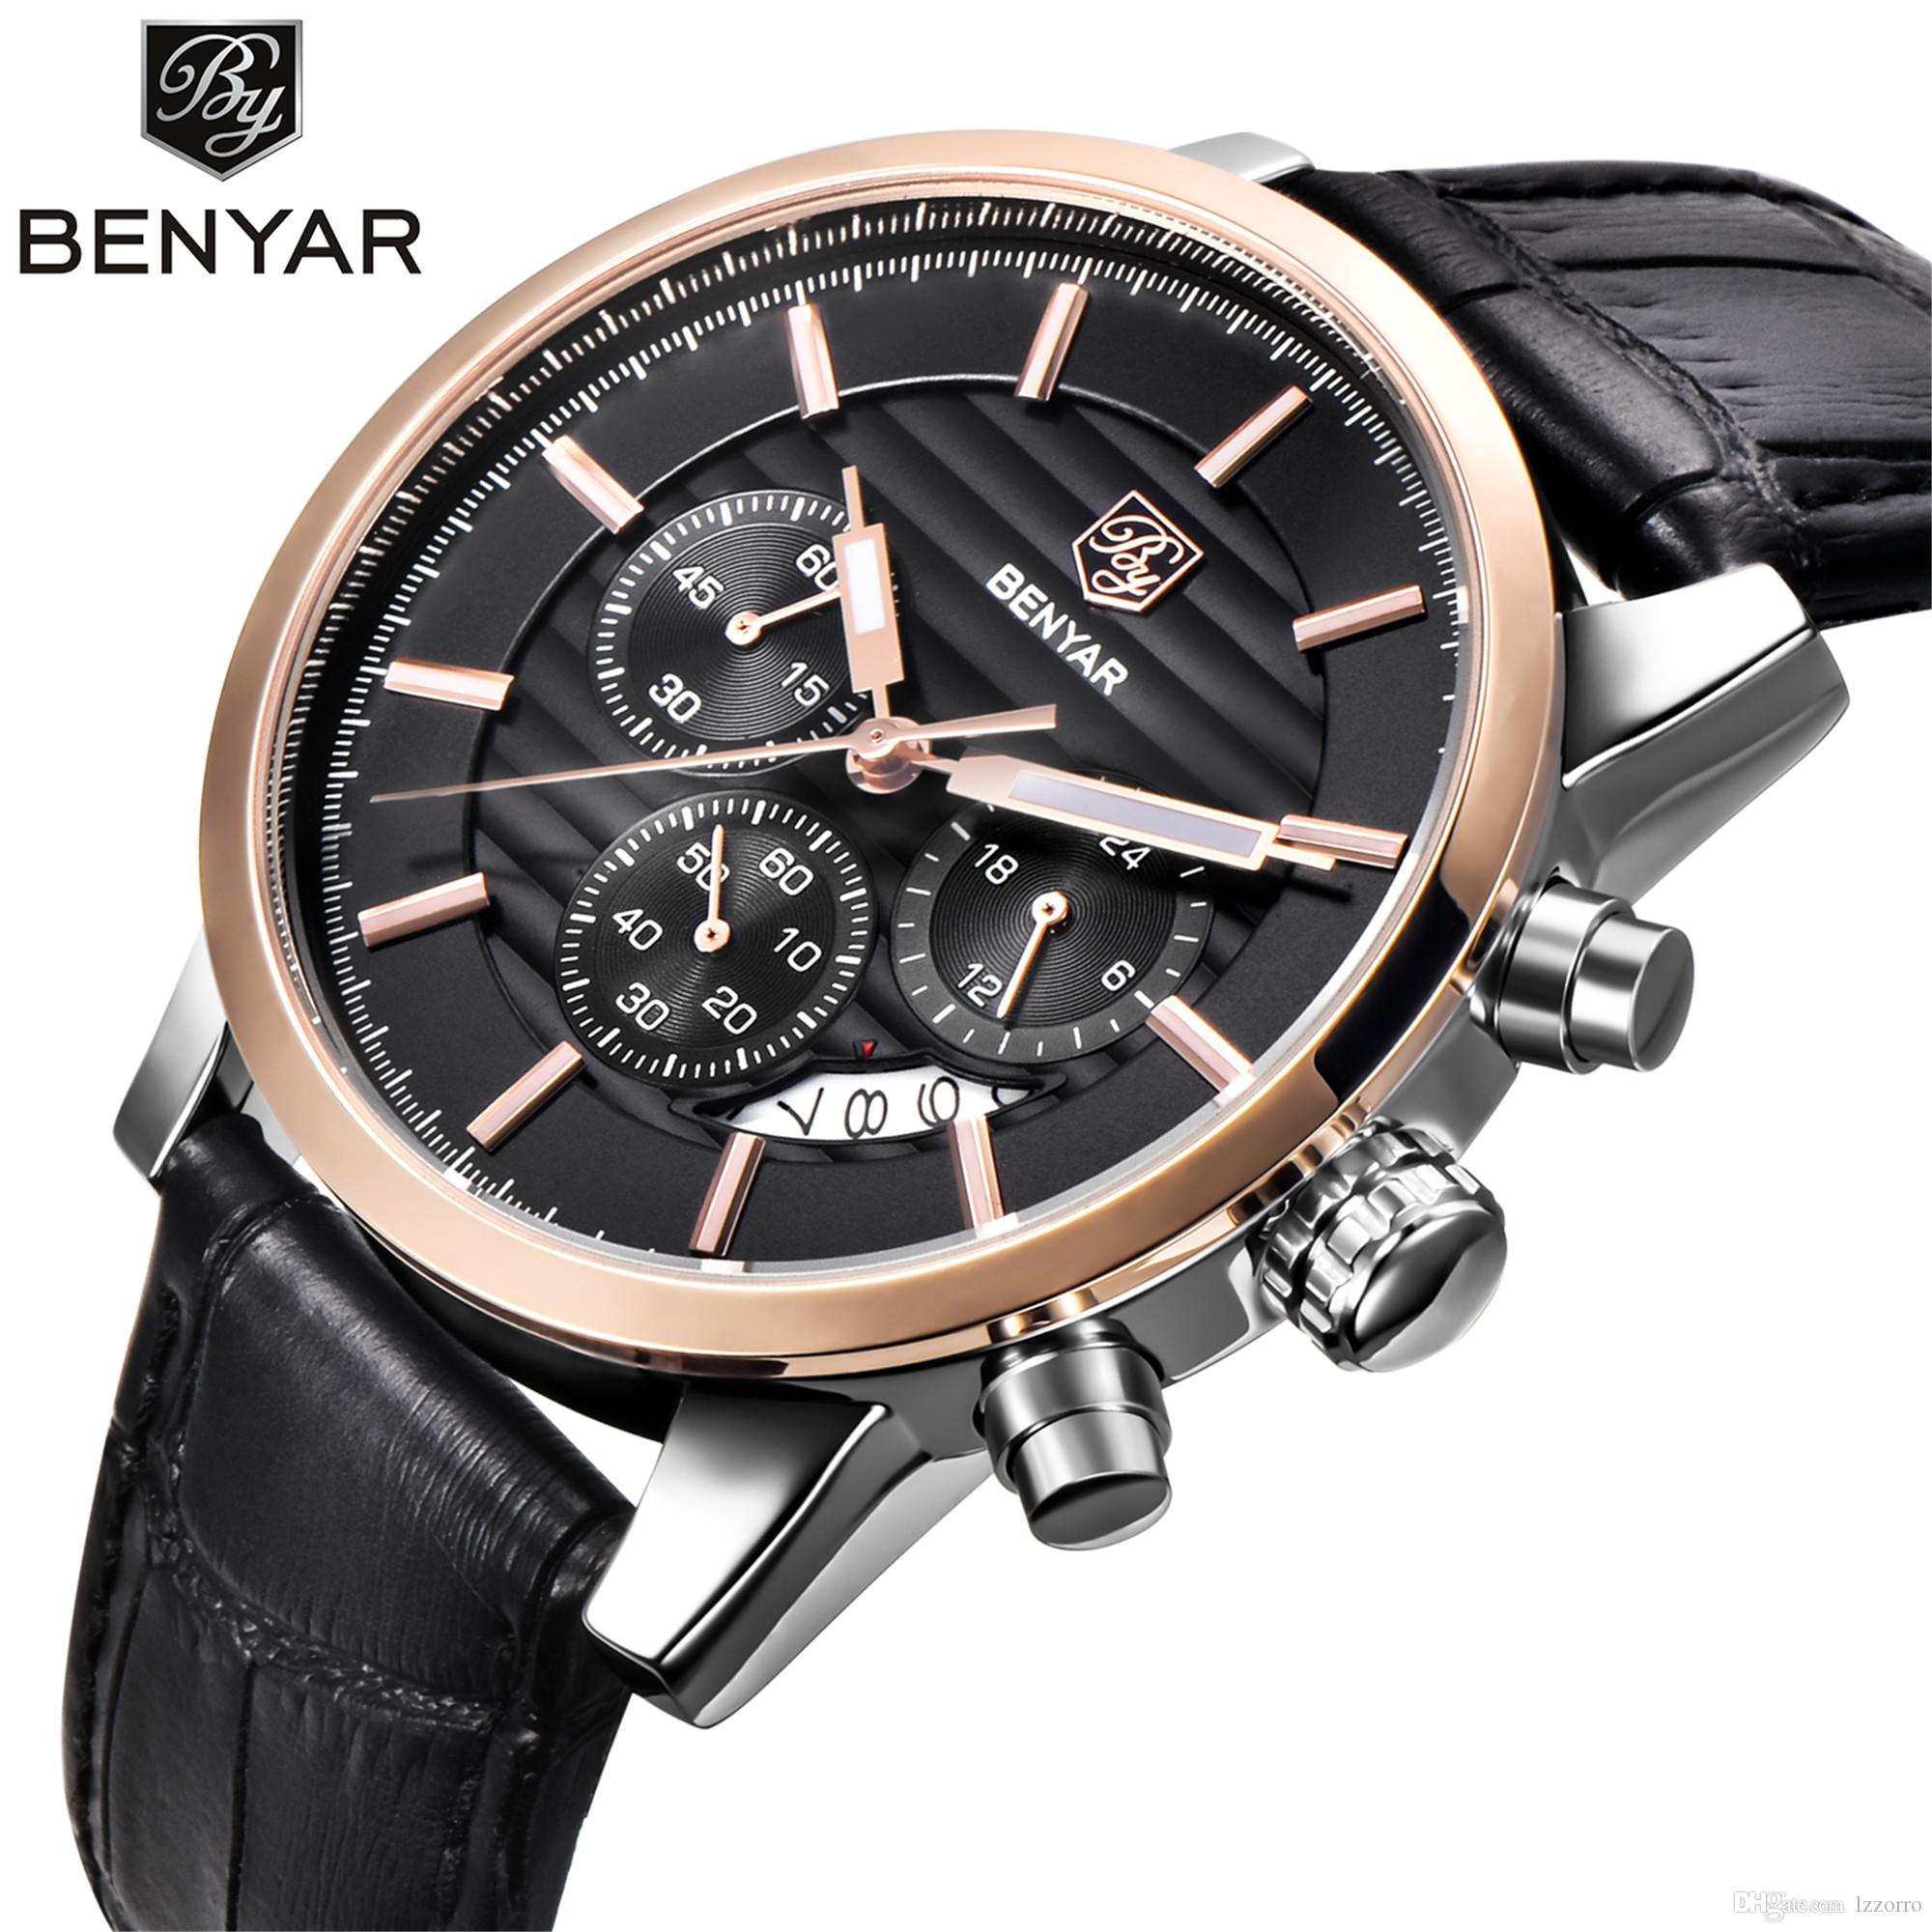 waterproof connected bluetooth watchshop watches armani mens com main watch smart emporio